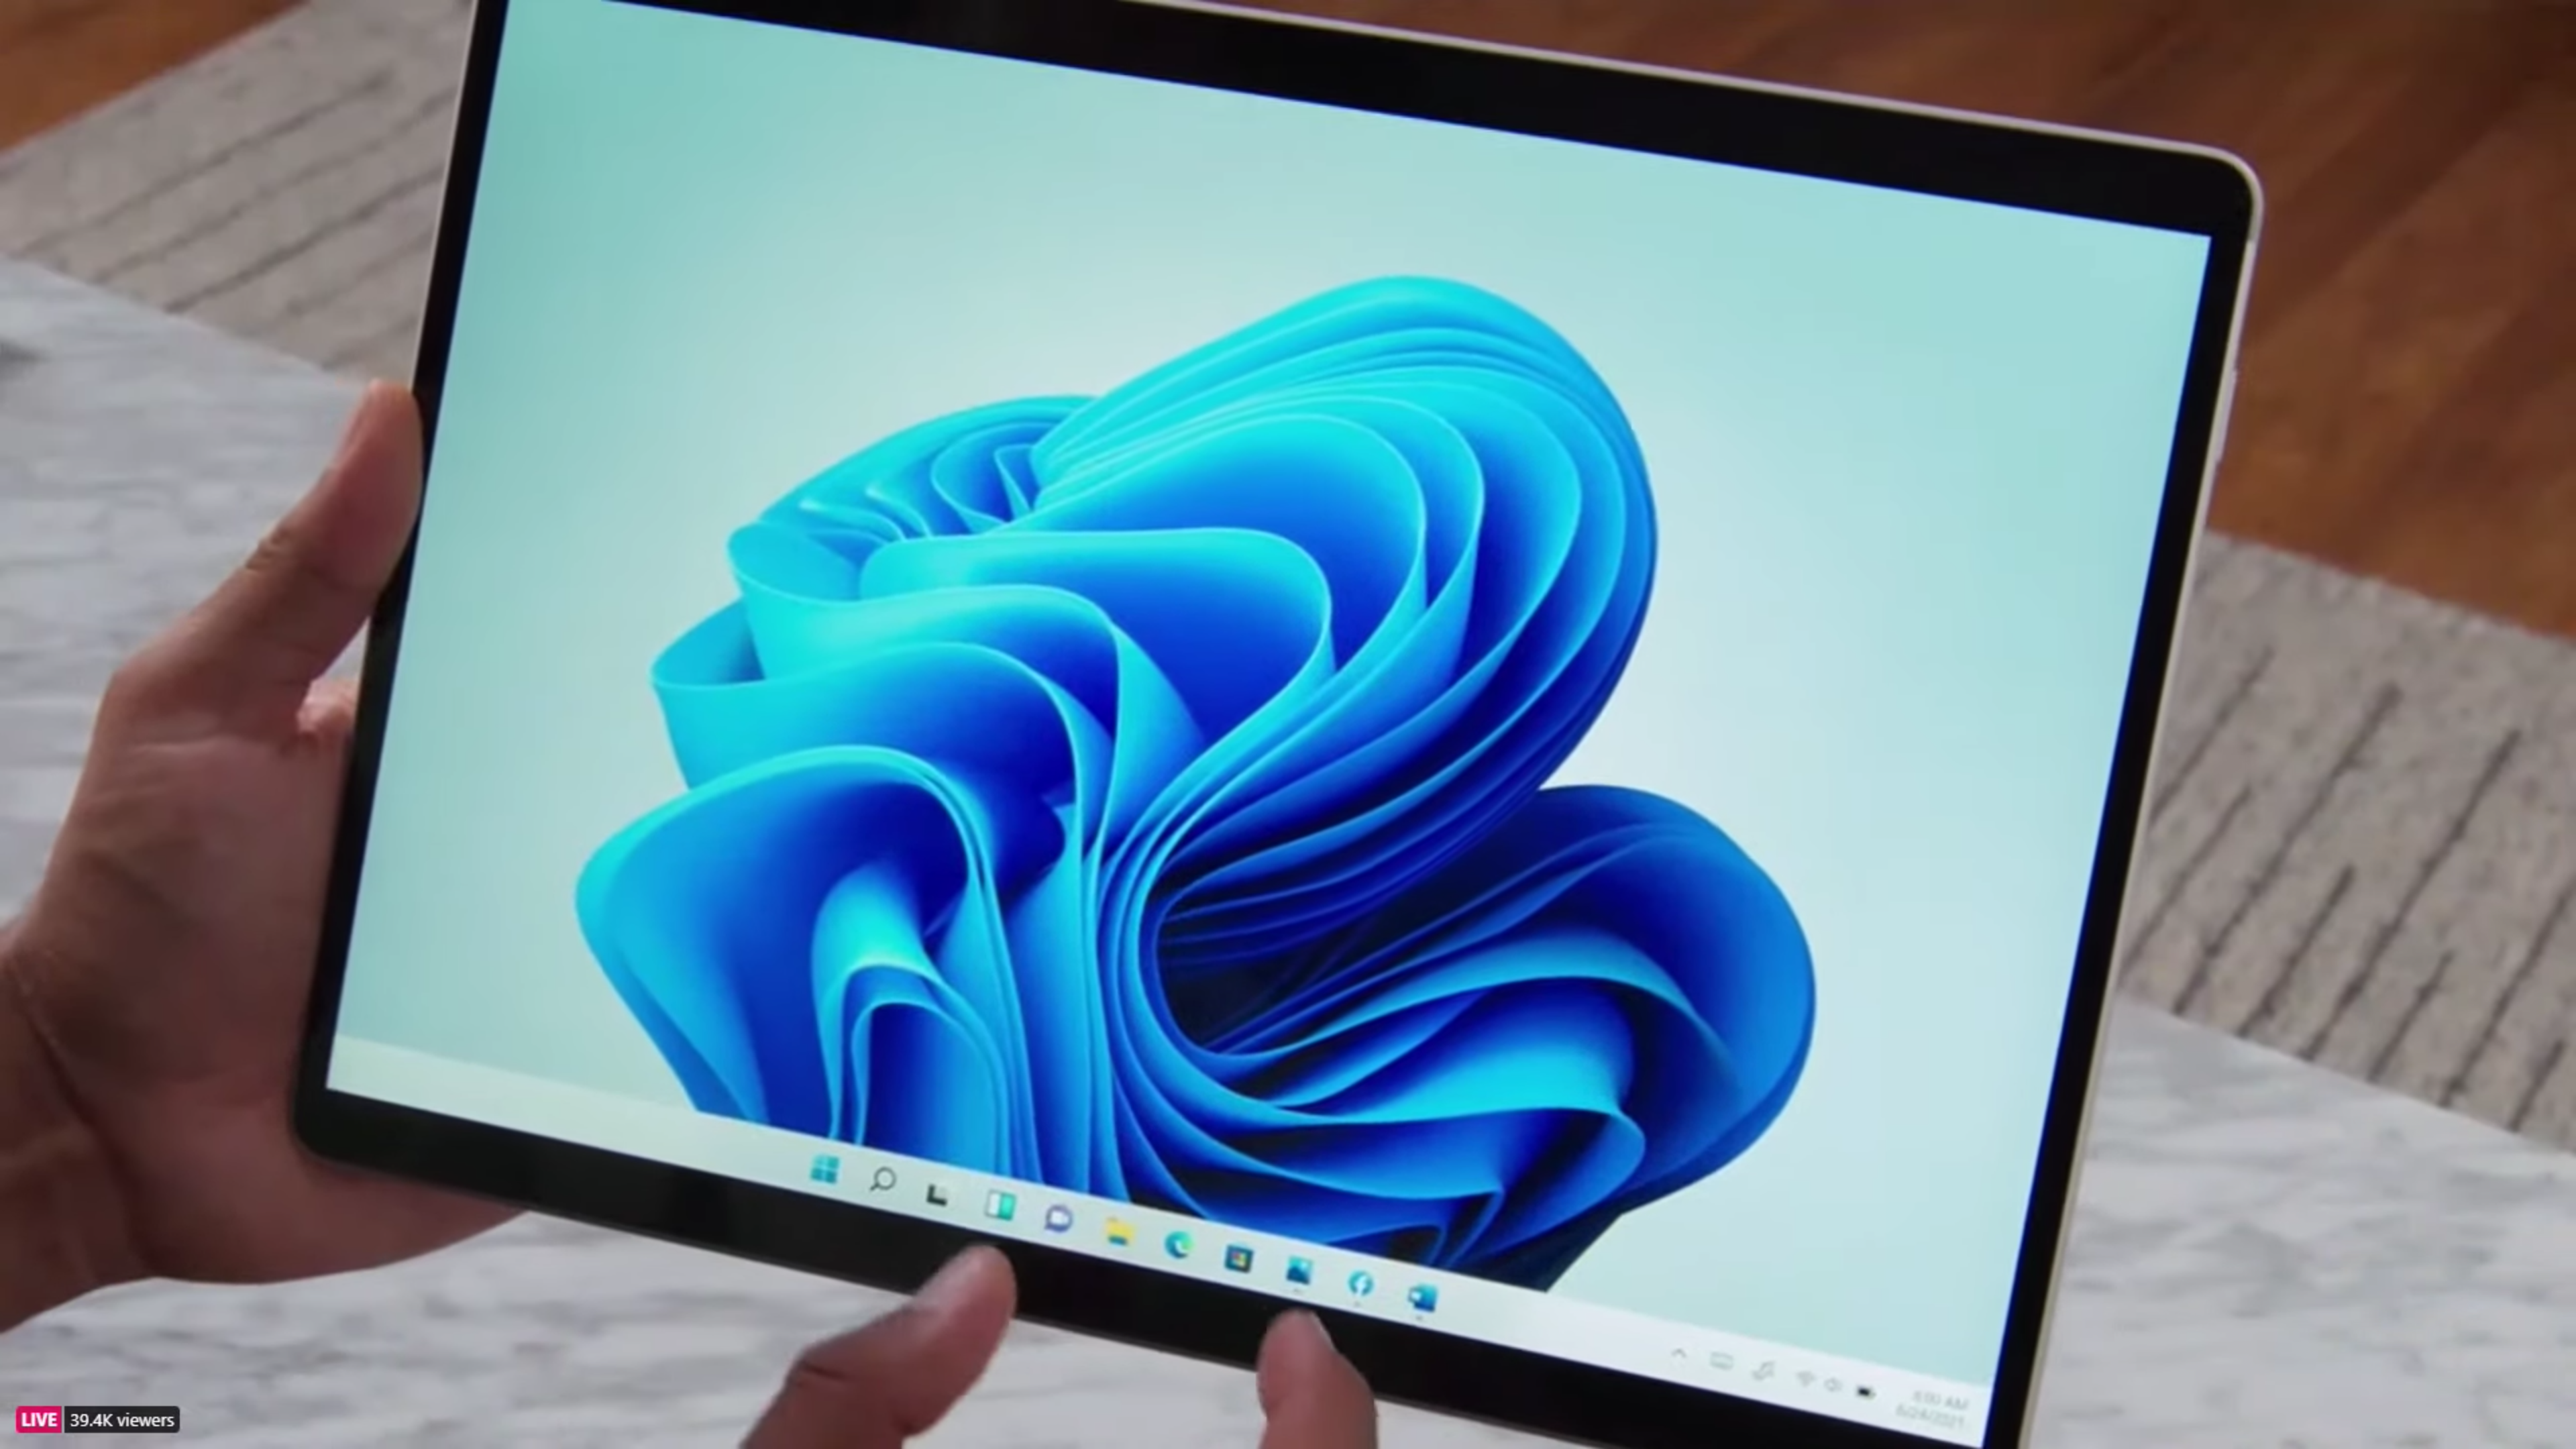 Windows 11 unveiled: A new Mac-like design and tons of new features - CNET